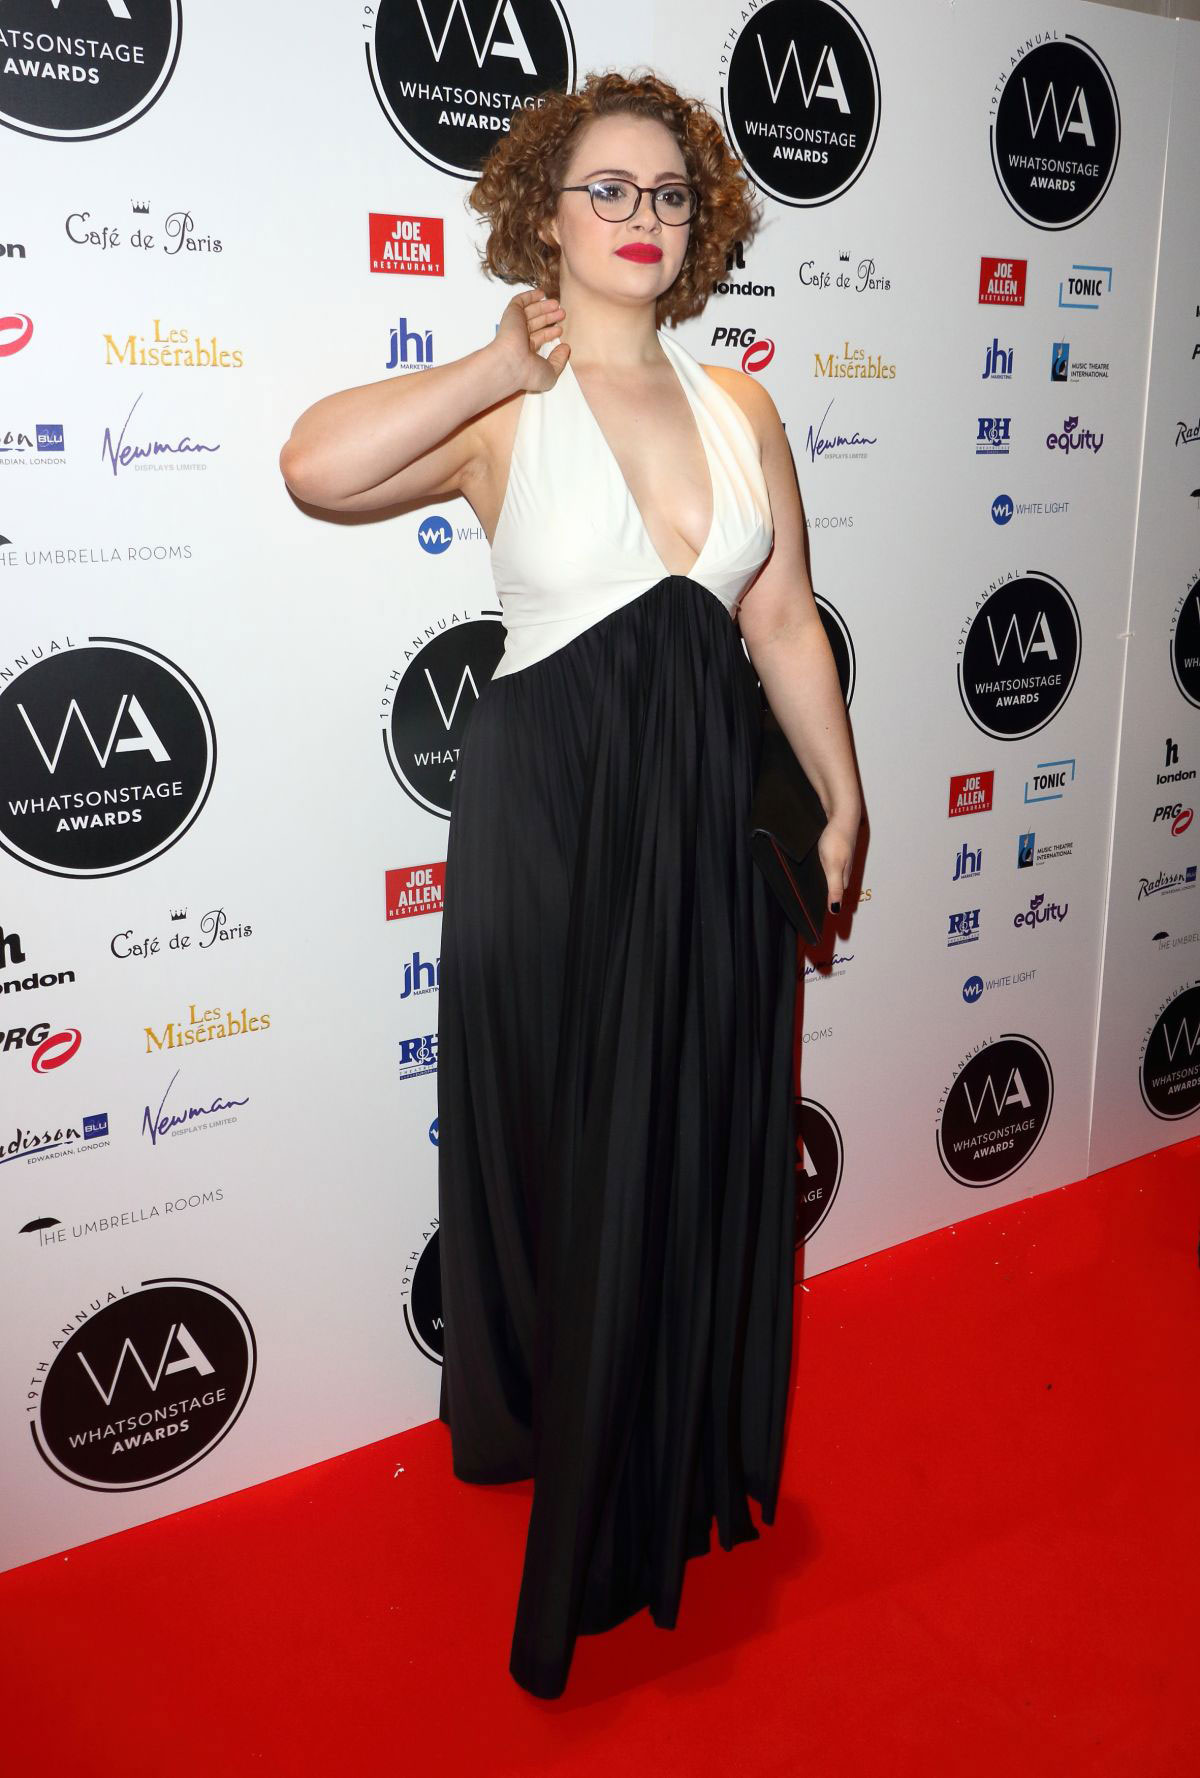 Hannah Waddingham at the Whatsonstage Awards 2019 at the